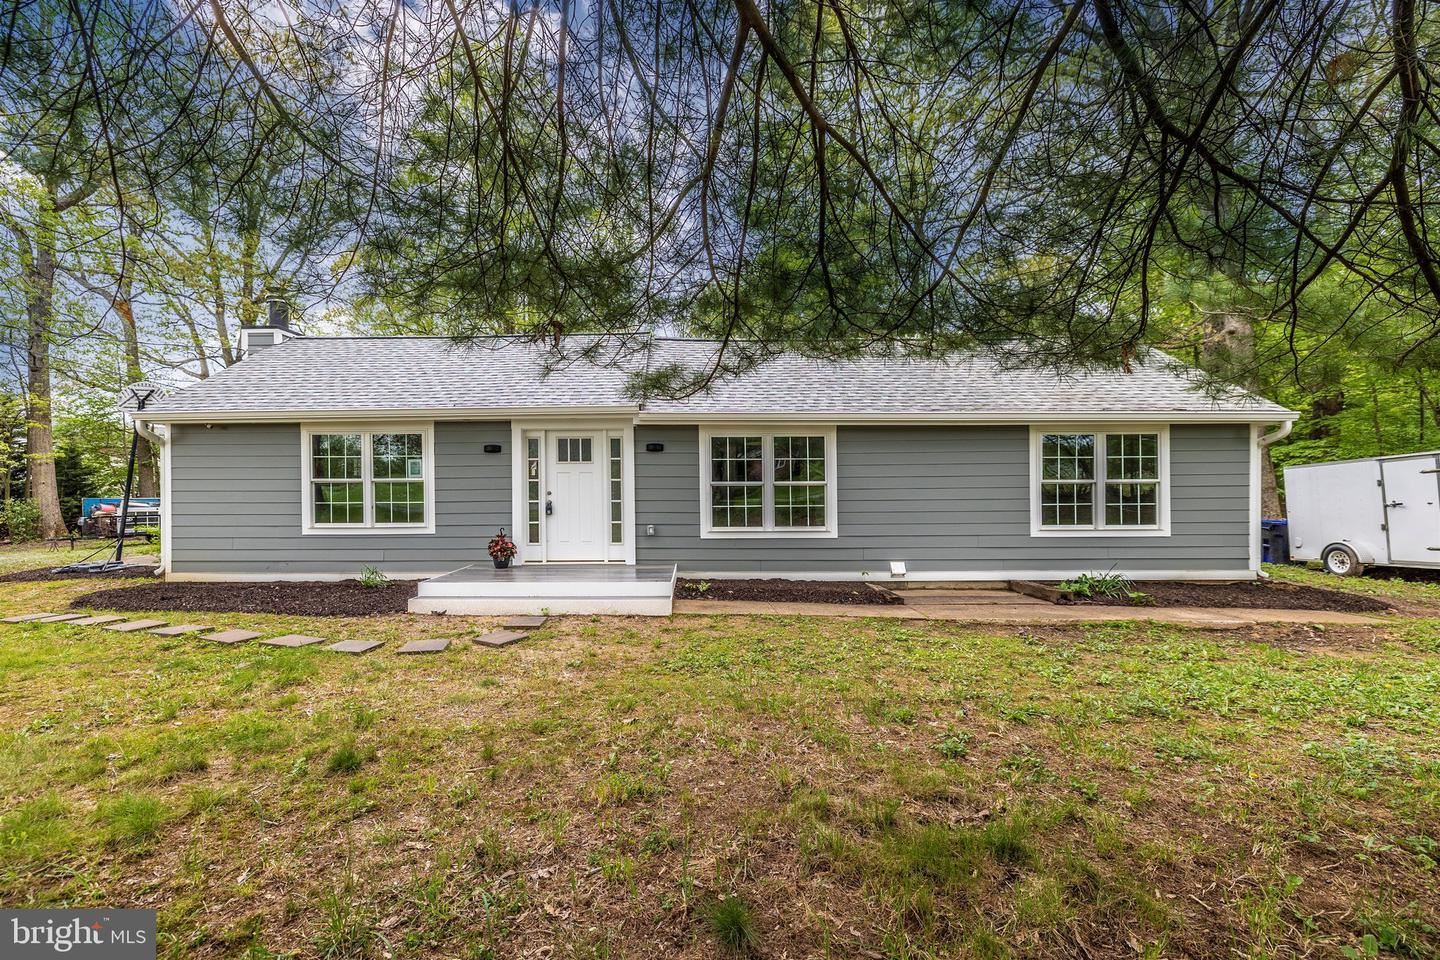 1044 SAINT MICHAELS RD, Mount Airy, MD 21771 - MLS#: MDHW292894